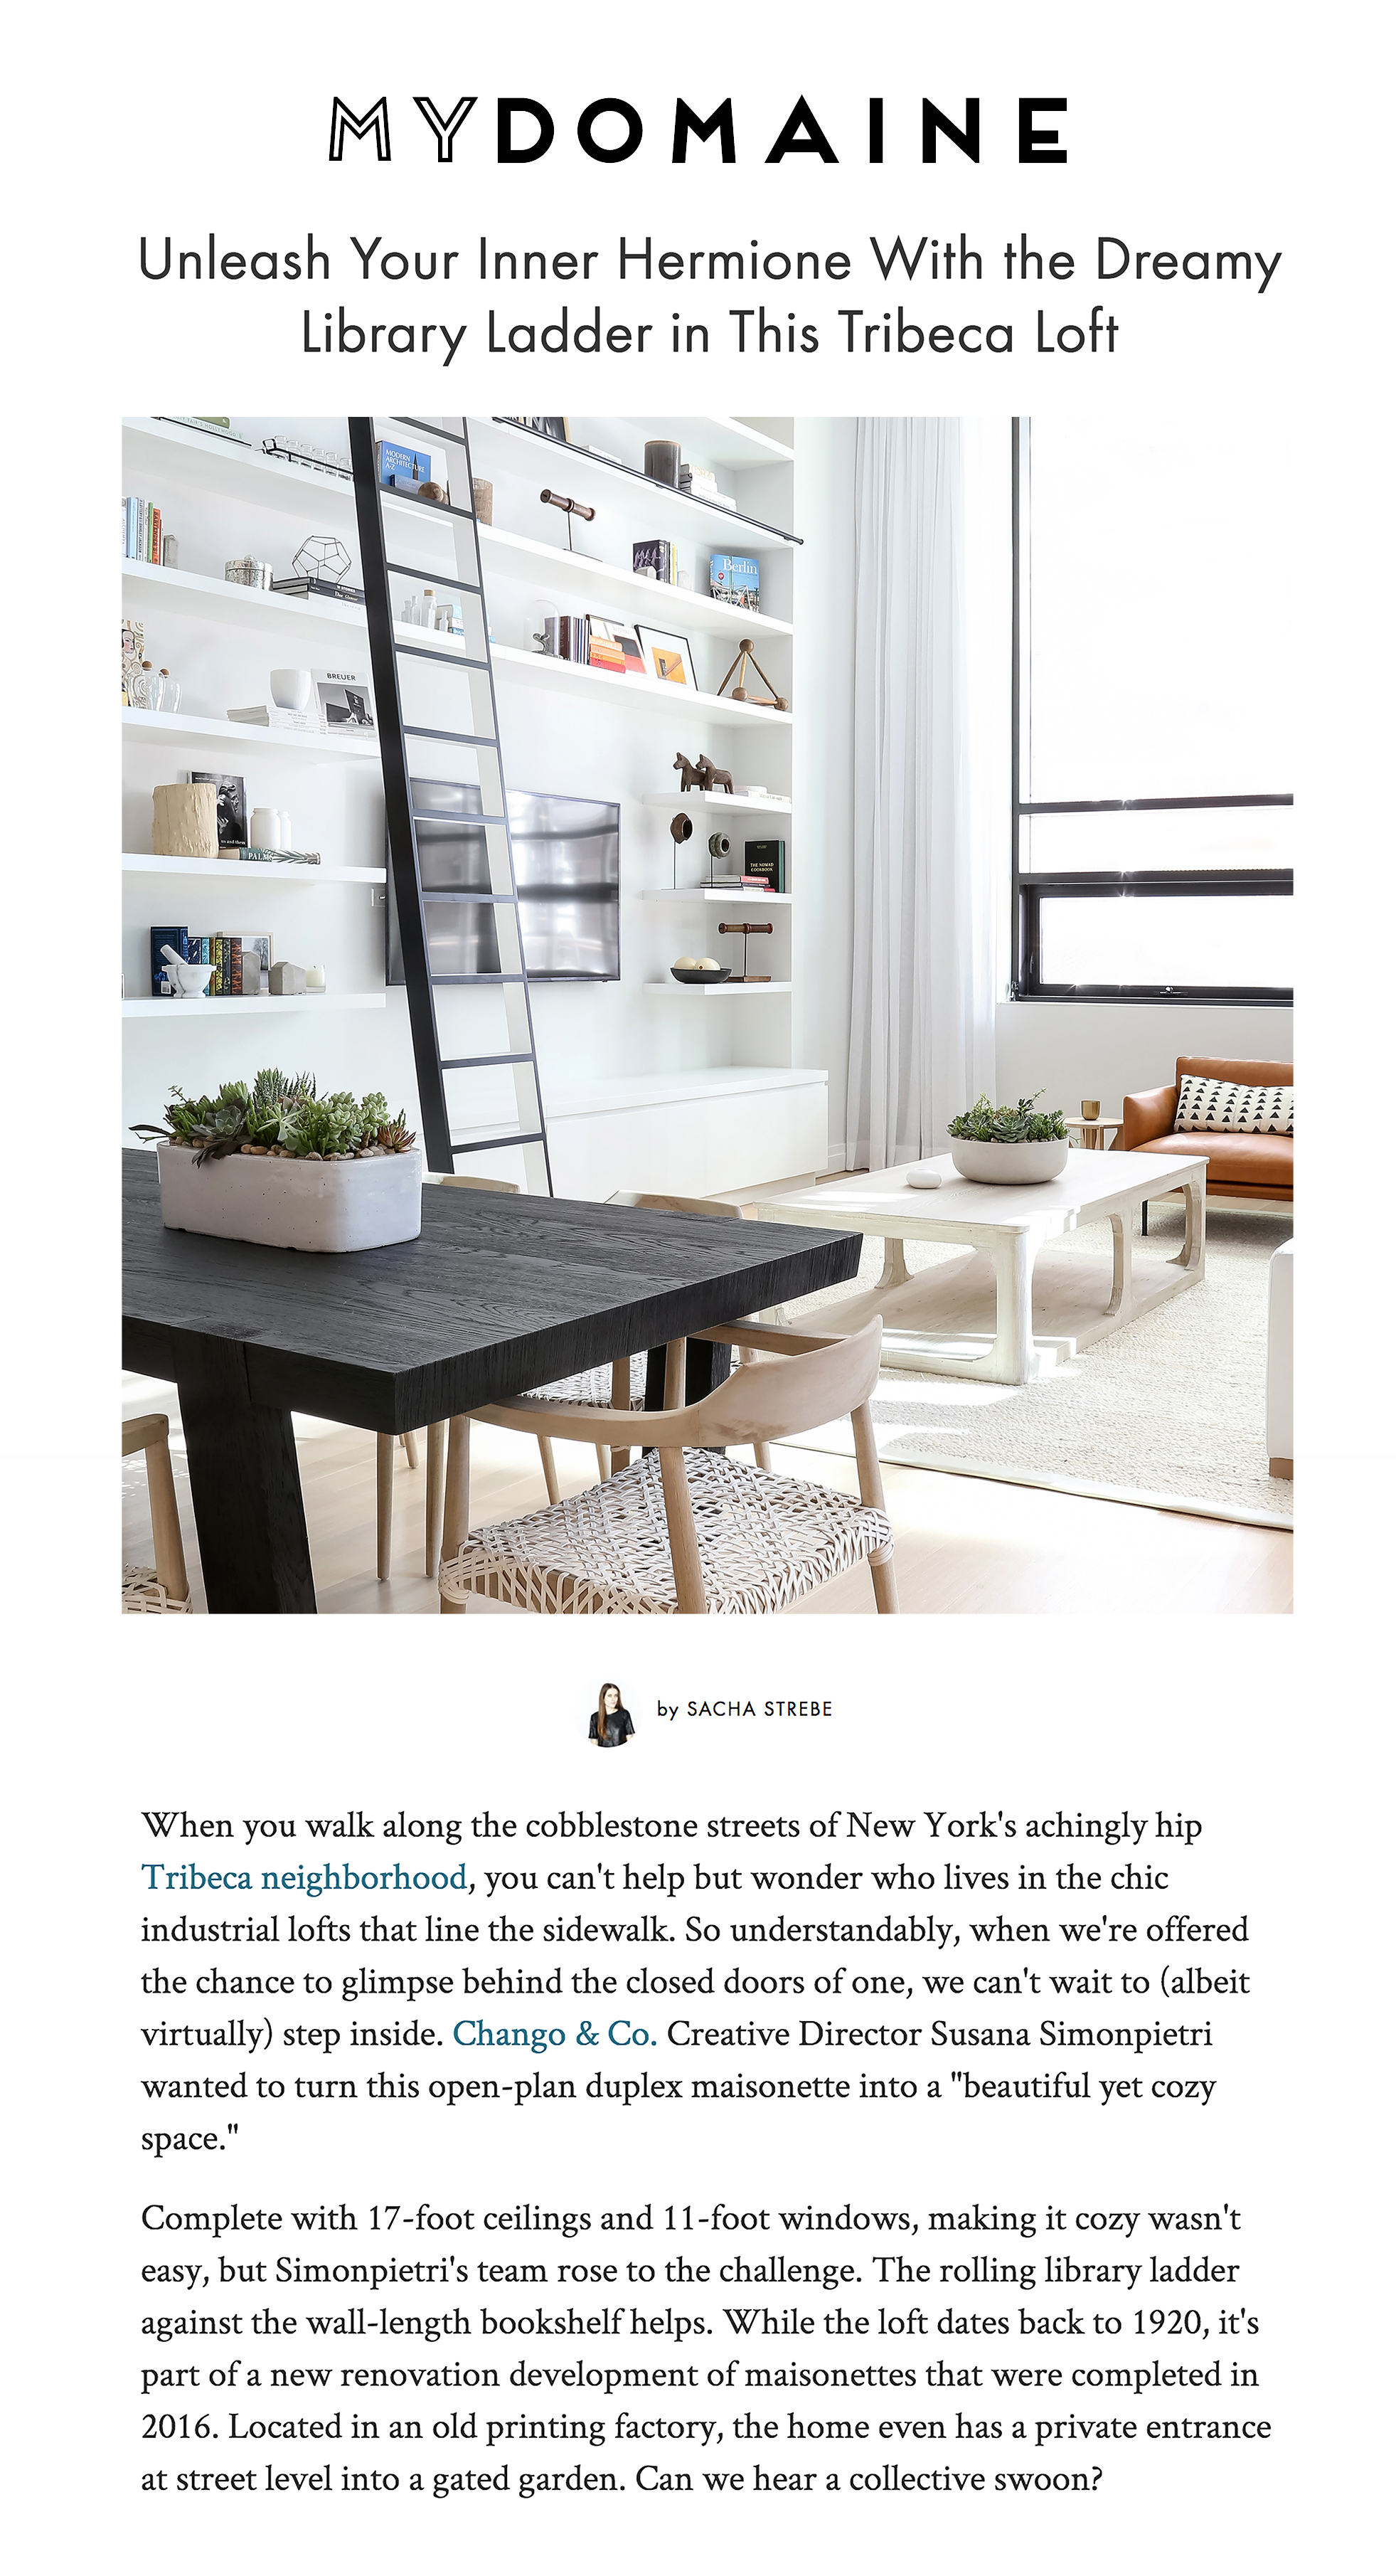 mydomaine printing house maisonette article.jpg